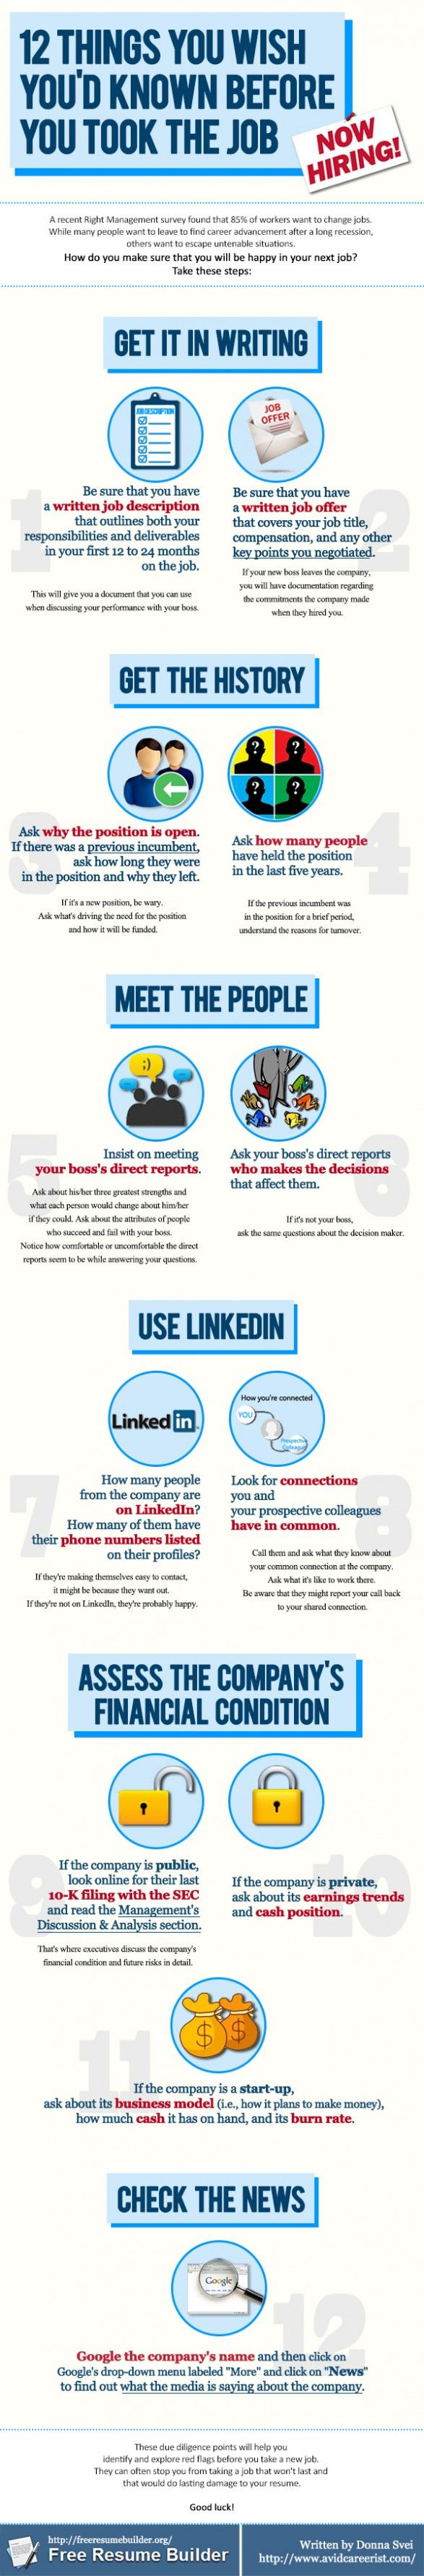 12 Things You Wish Youu0027d Known Before Taking The Job #Infographic